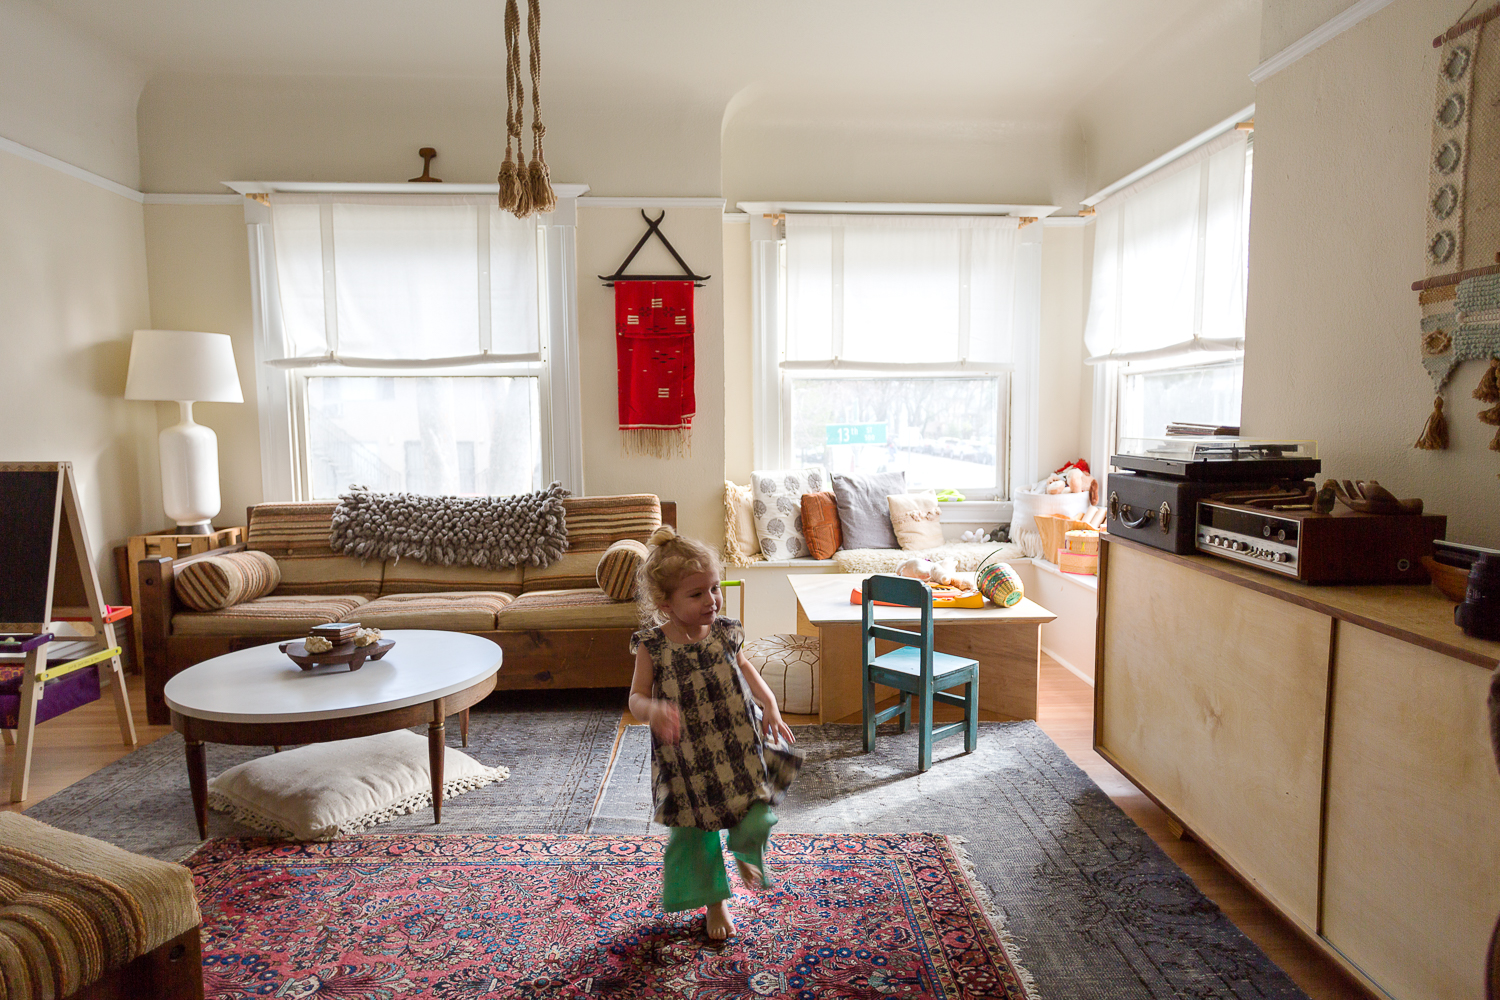 Craigslist couch scores and some dramatic fan tassels. Edie dances in her own little bohemian baby nook.